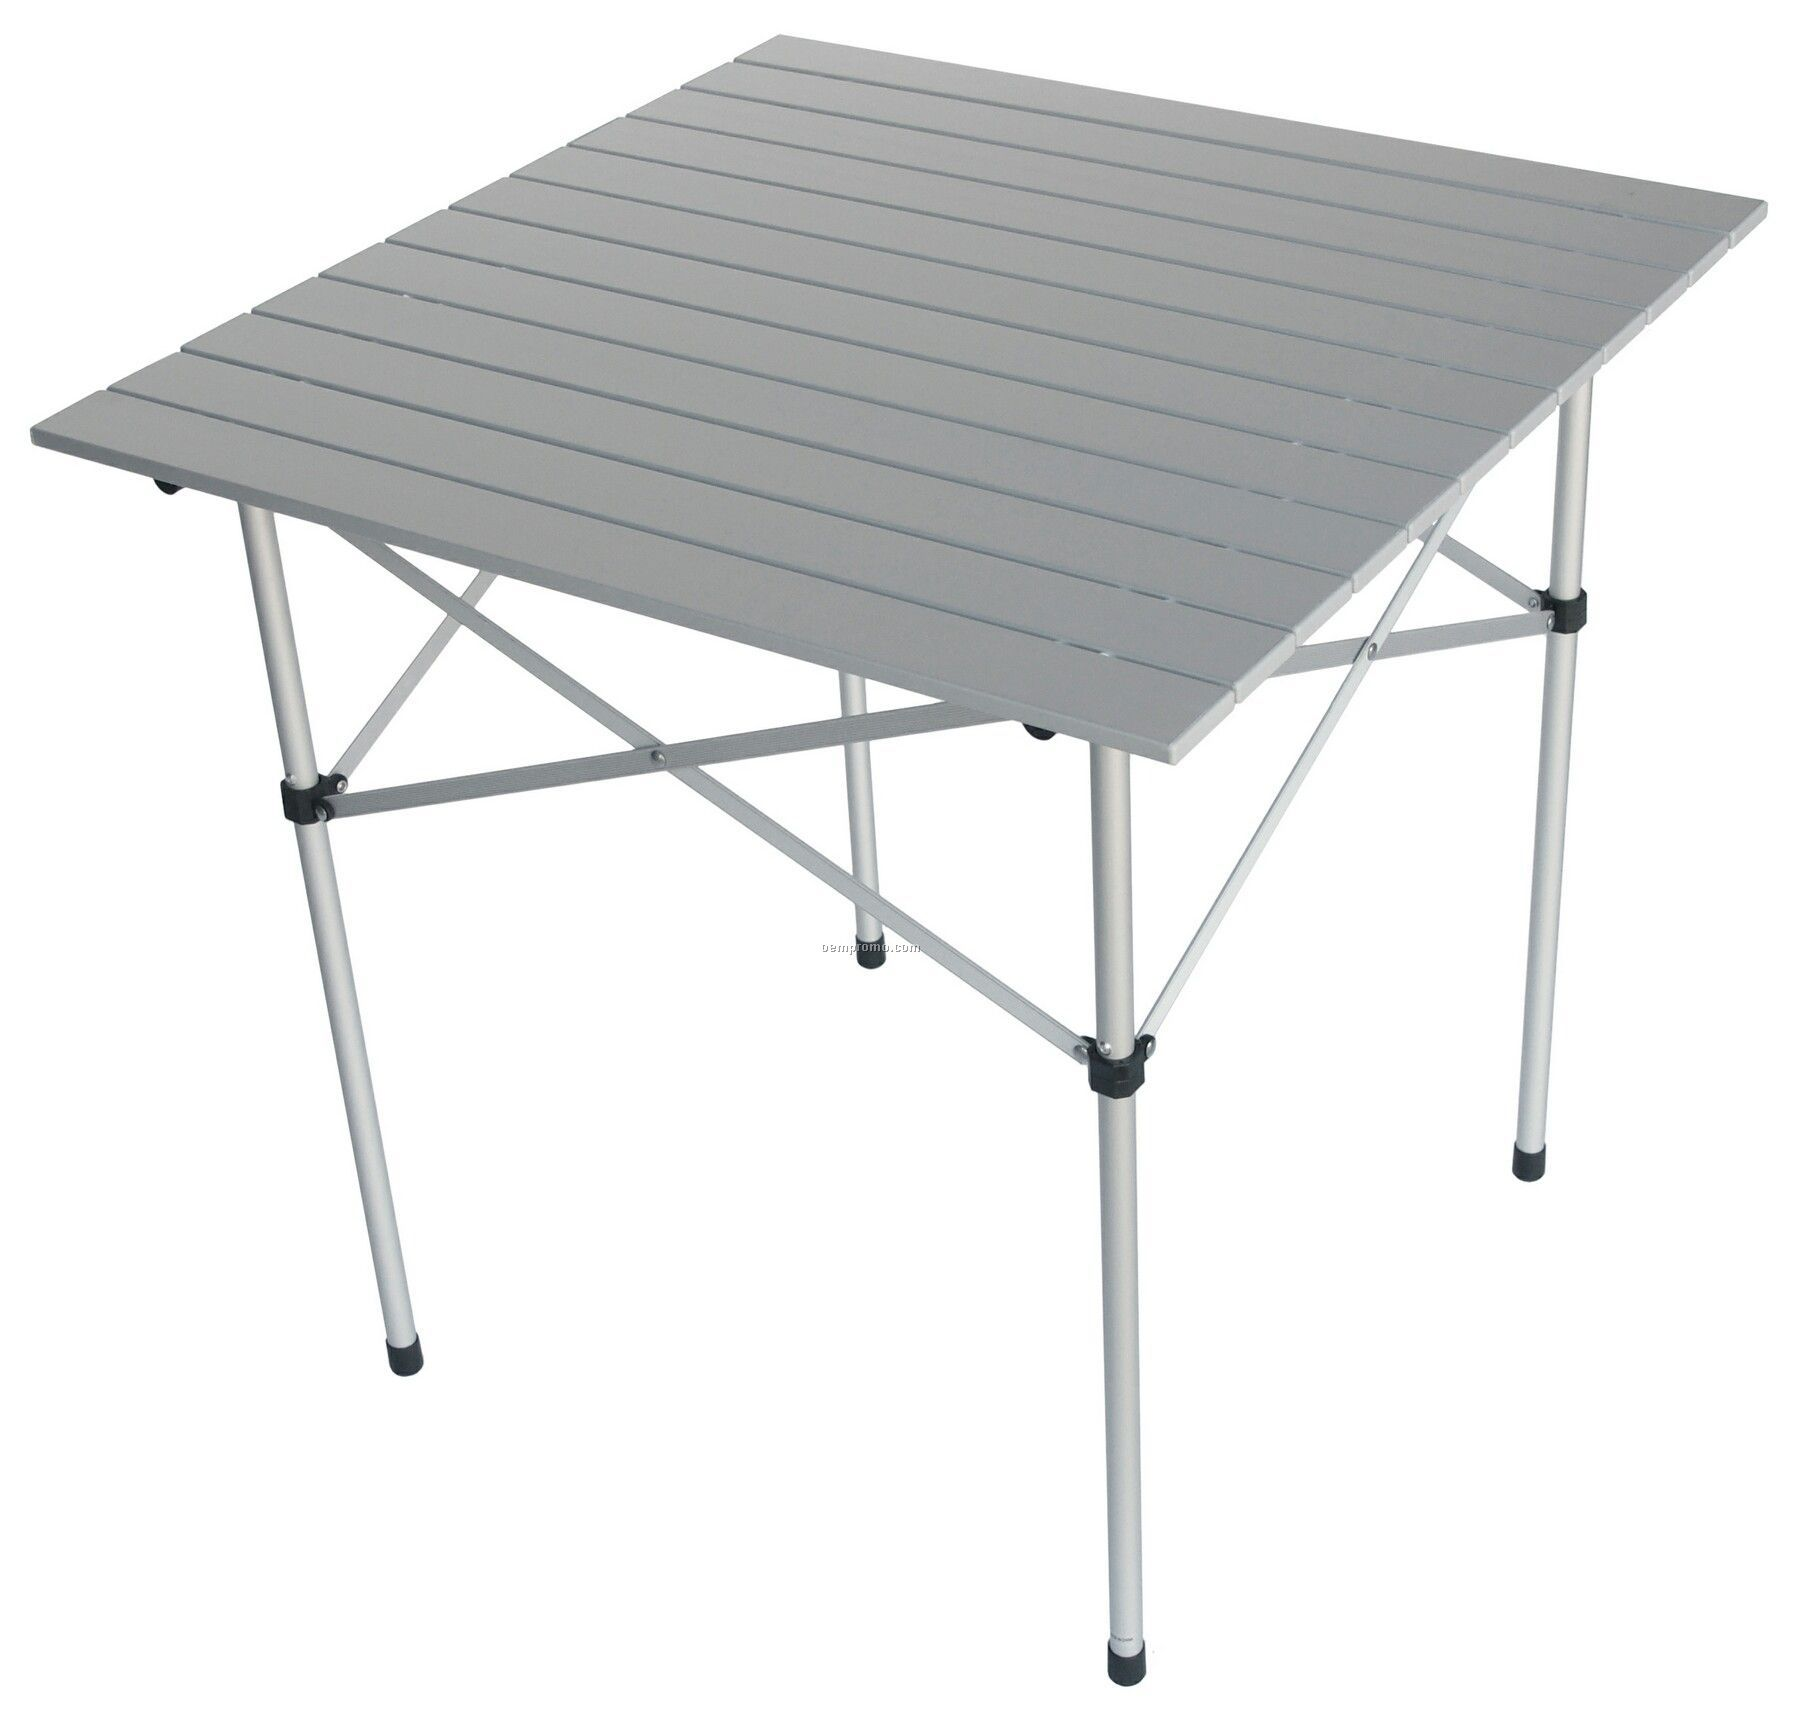 Folding Silver-gray Finish Aluminum Table And Black Carry Bag